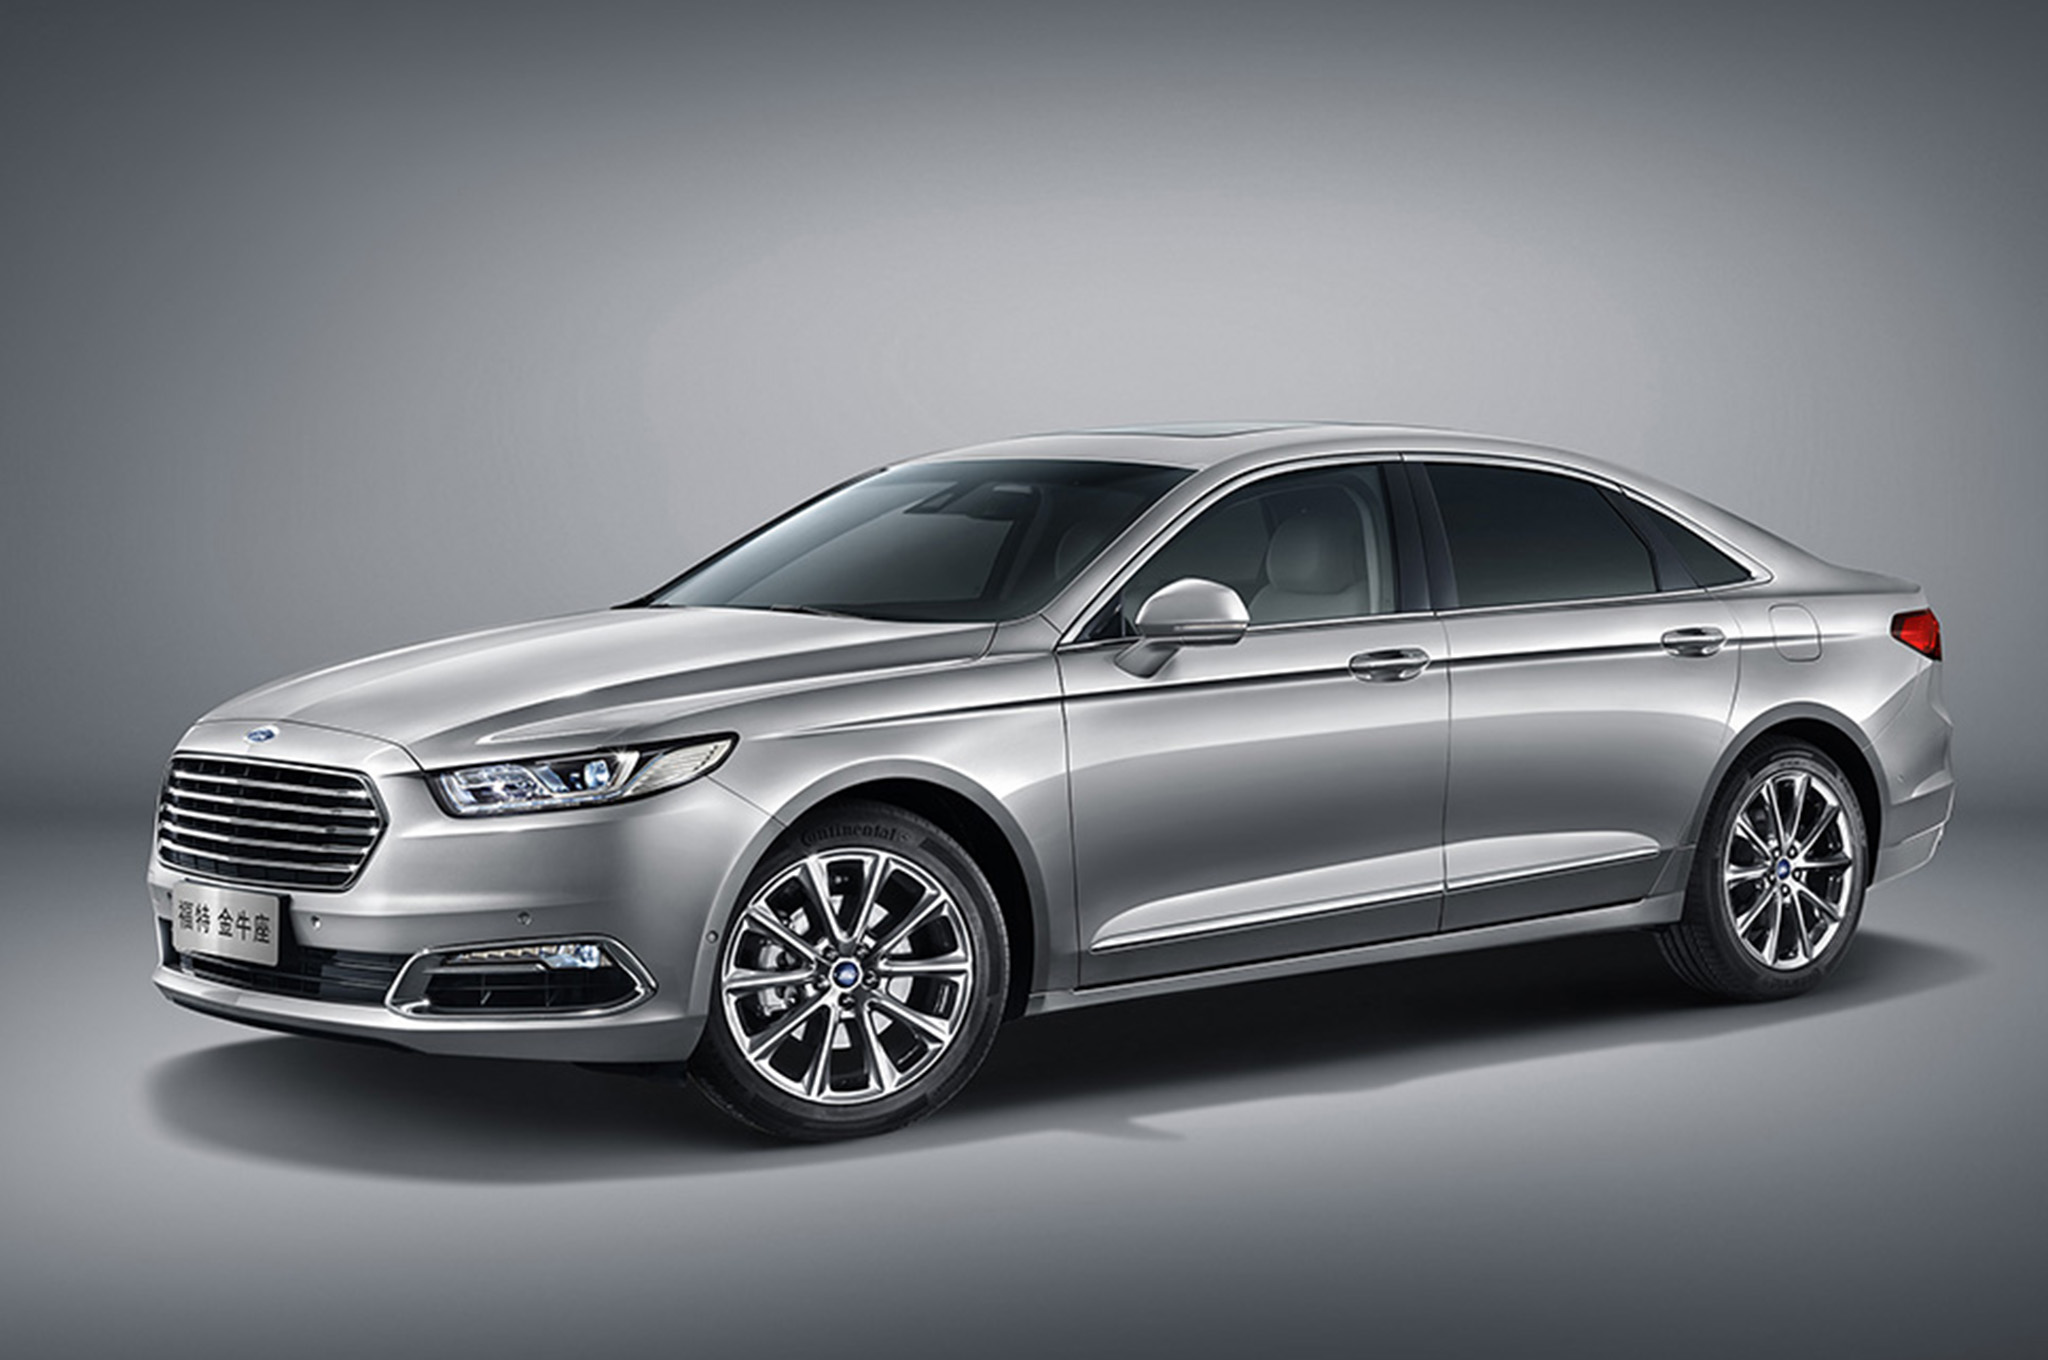 Future Cars 2016 And Beyond Motor Trend Lincoln Ls V8the Fuse Box On The Passenger Sidediagram